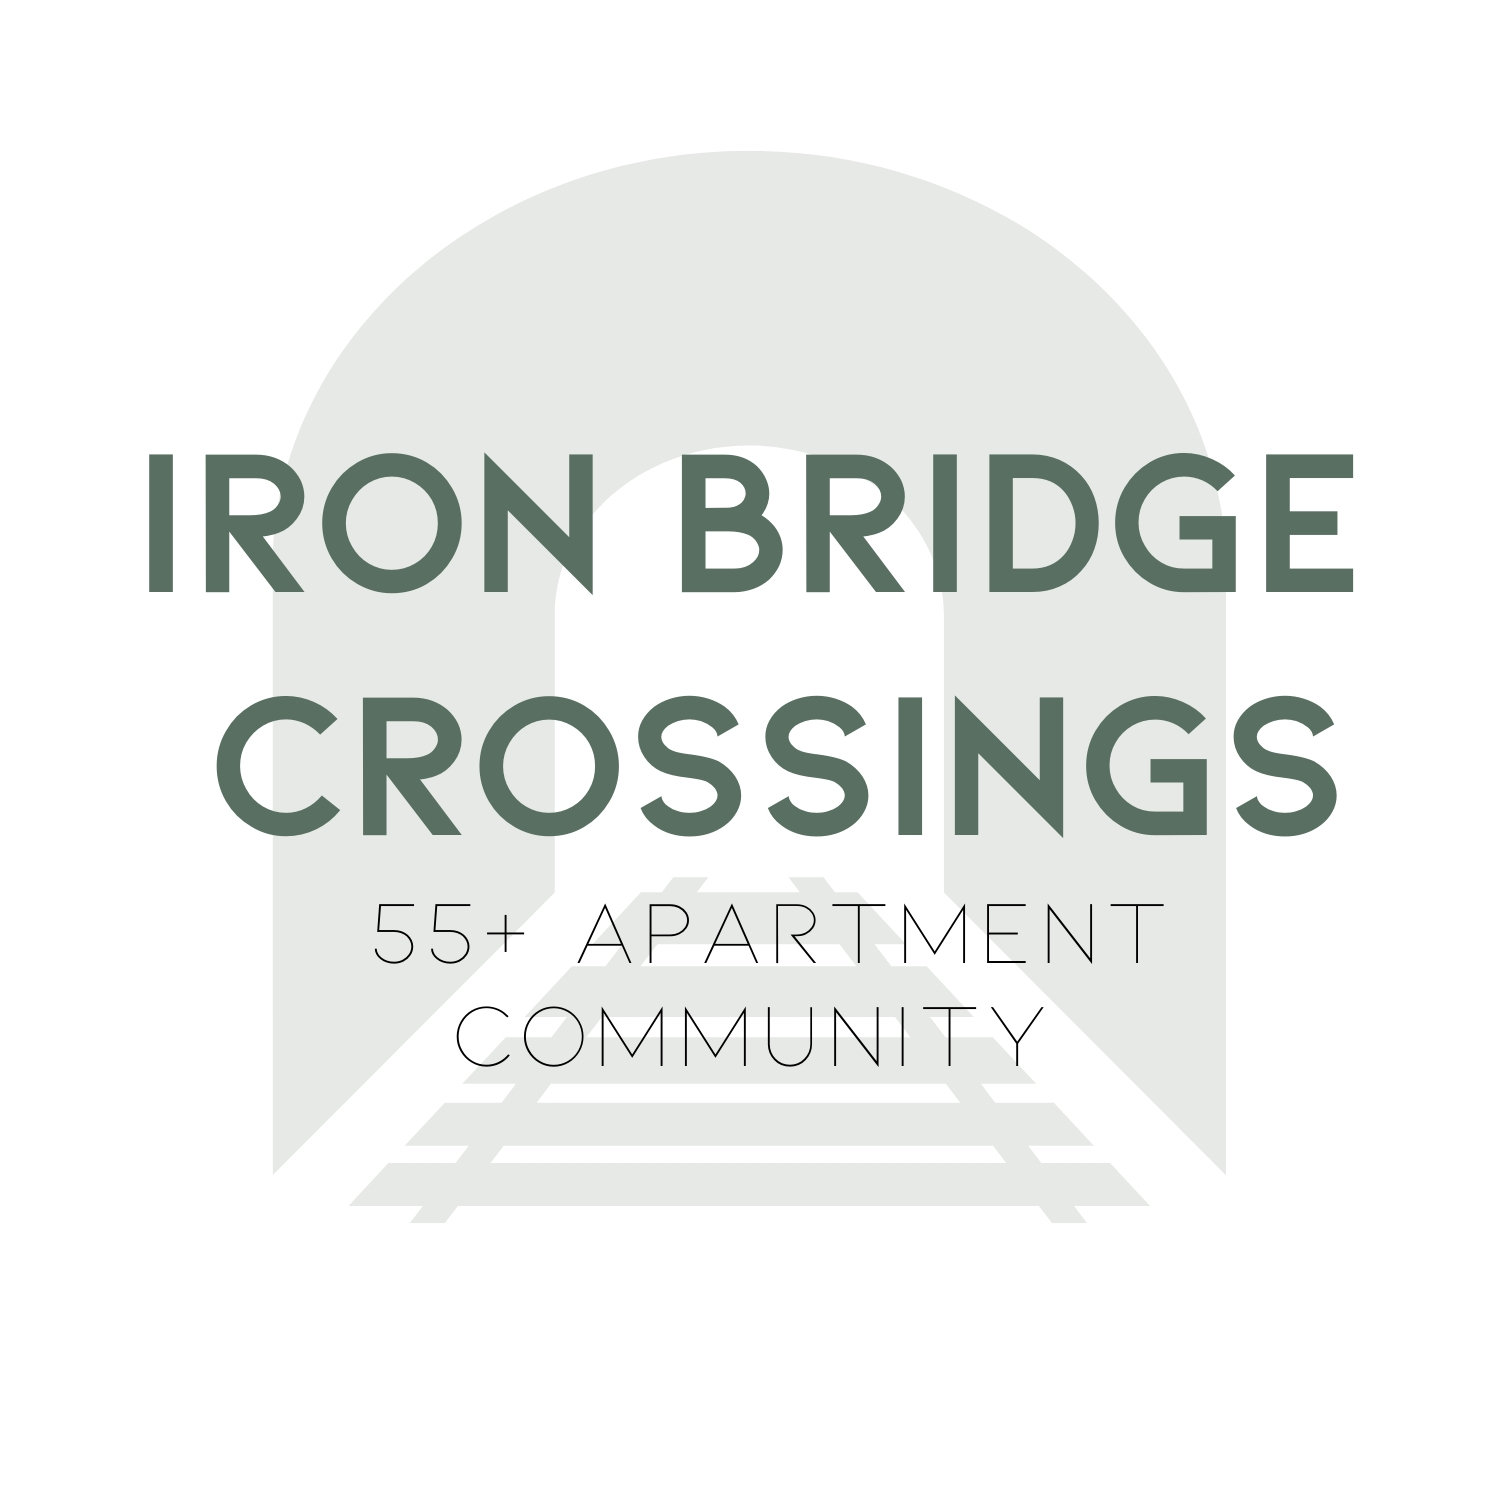 Iron Bridge Crossings Logo